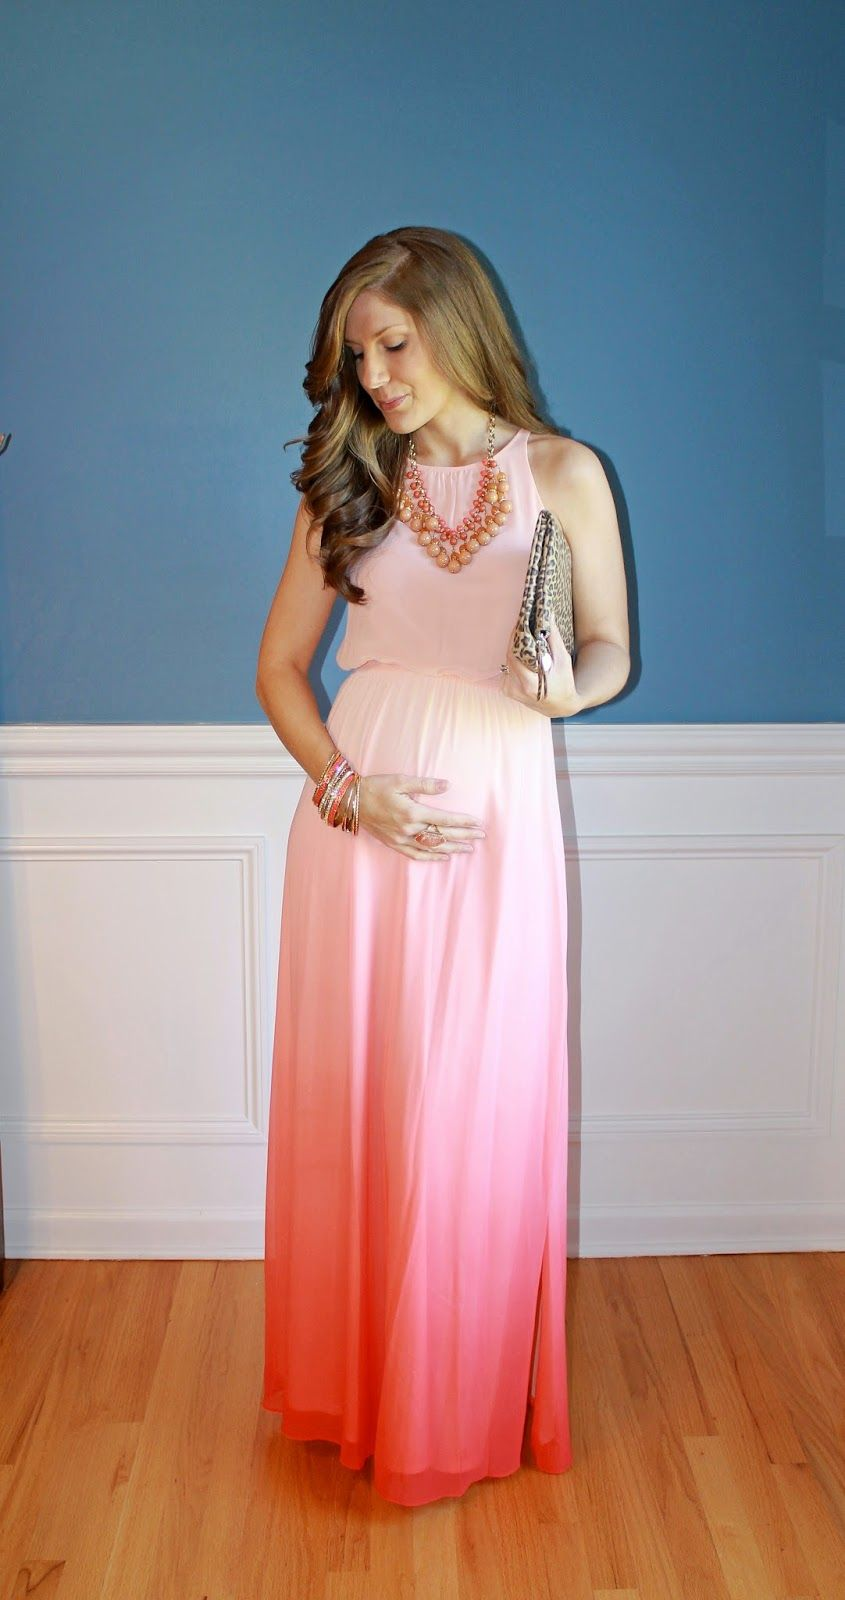 kohls wedding dresses I have this dress from Kohls which is one of my favorite dresses I